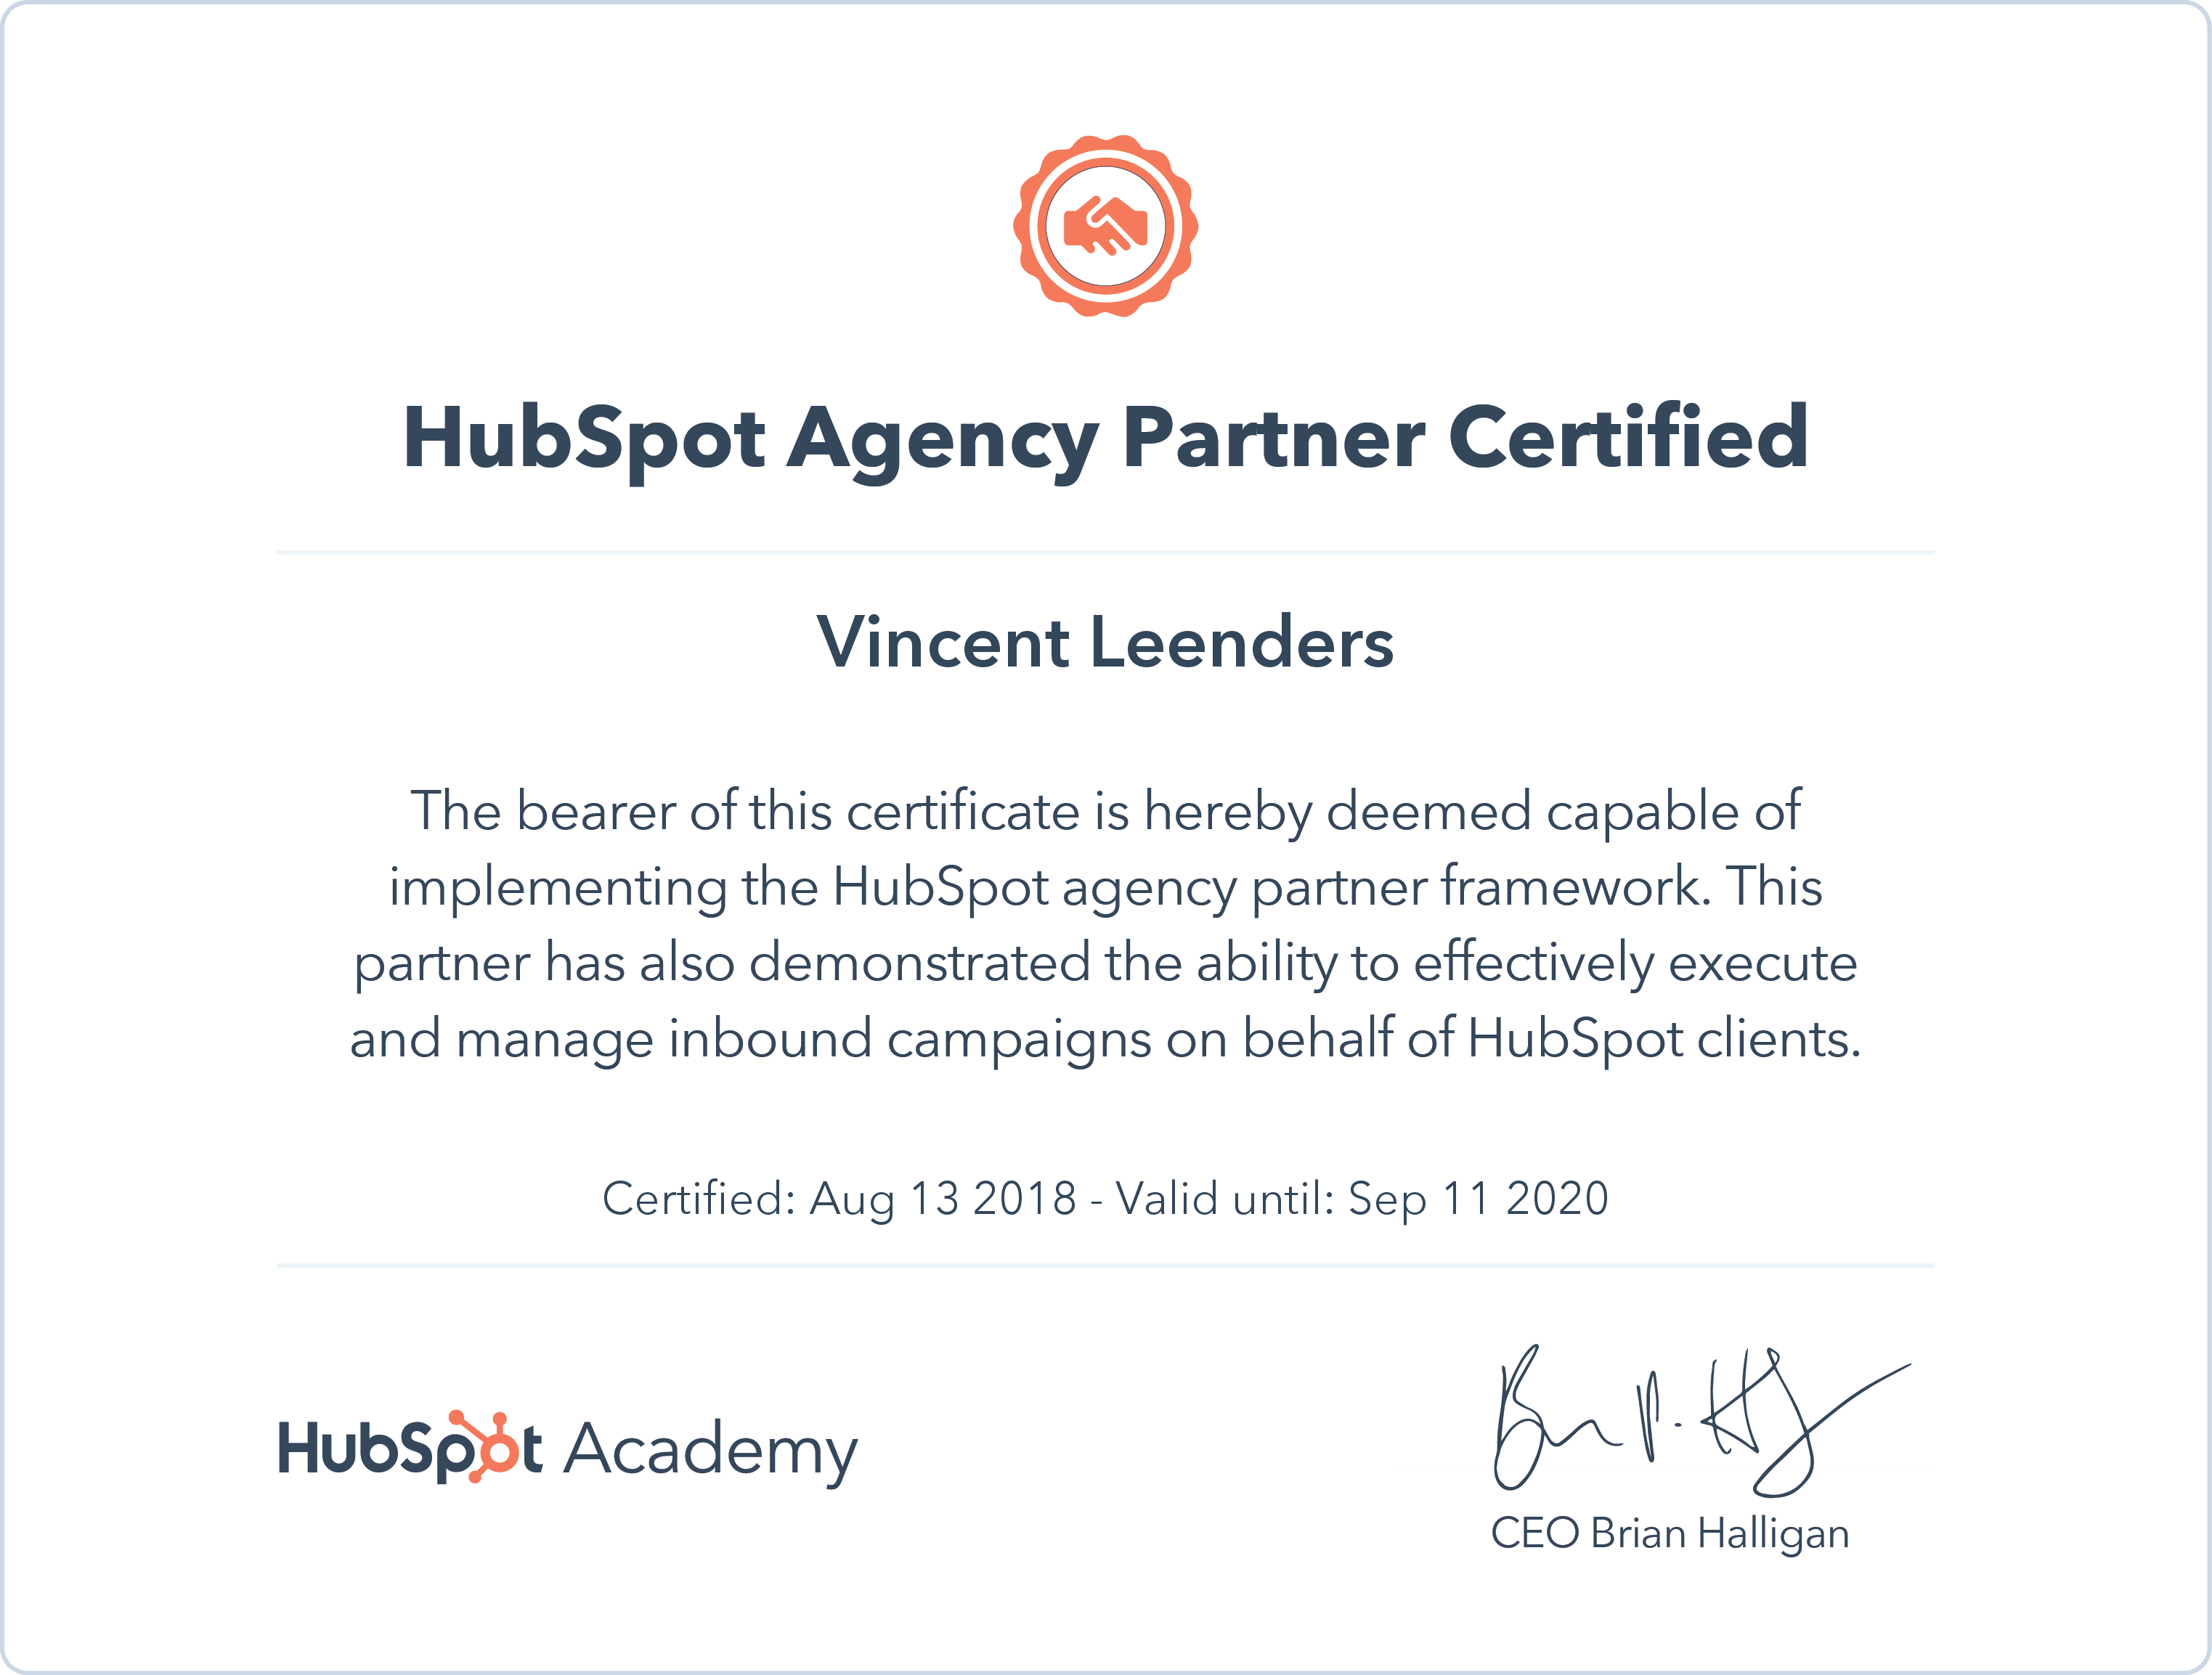 HubSpot_Agency_Partner